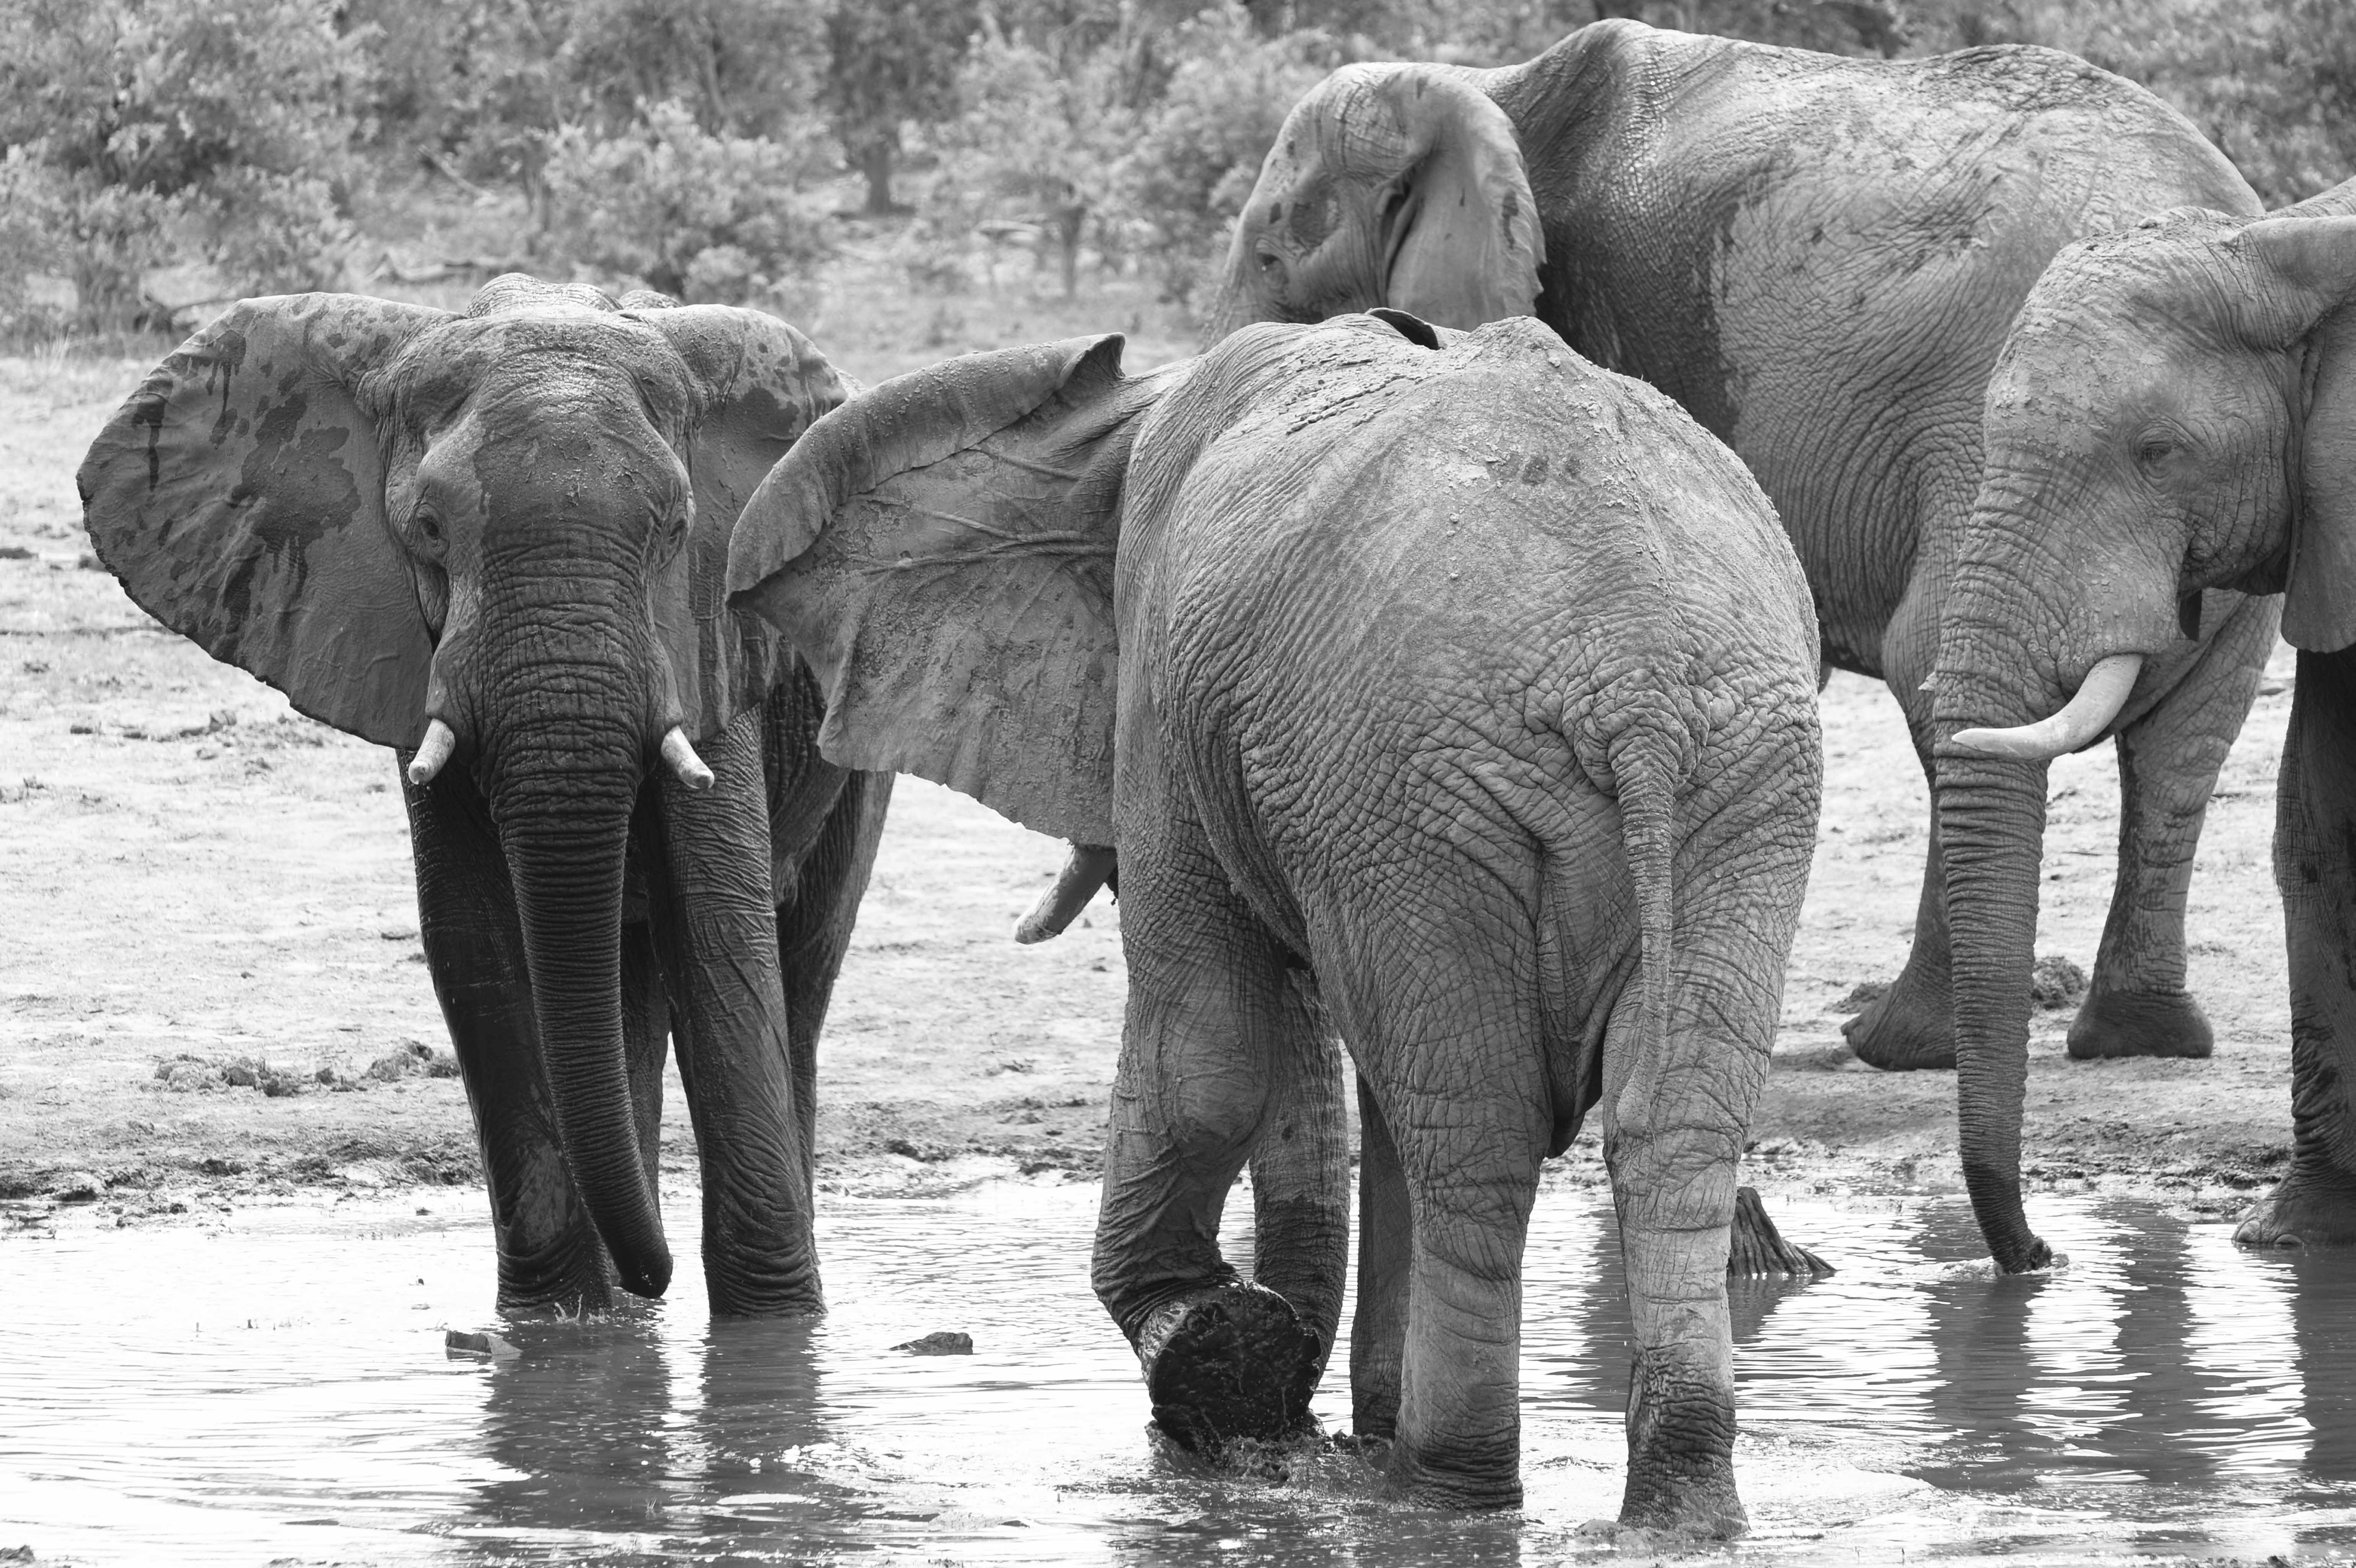 Elephants, BW ©Johannes Ratermann